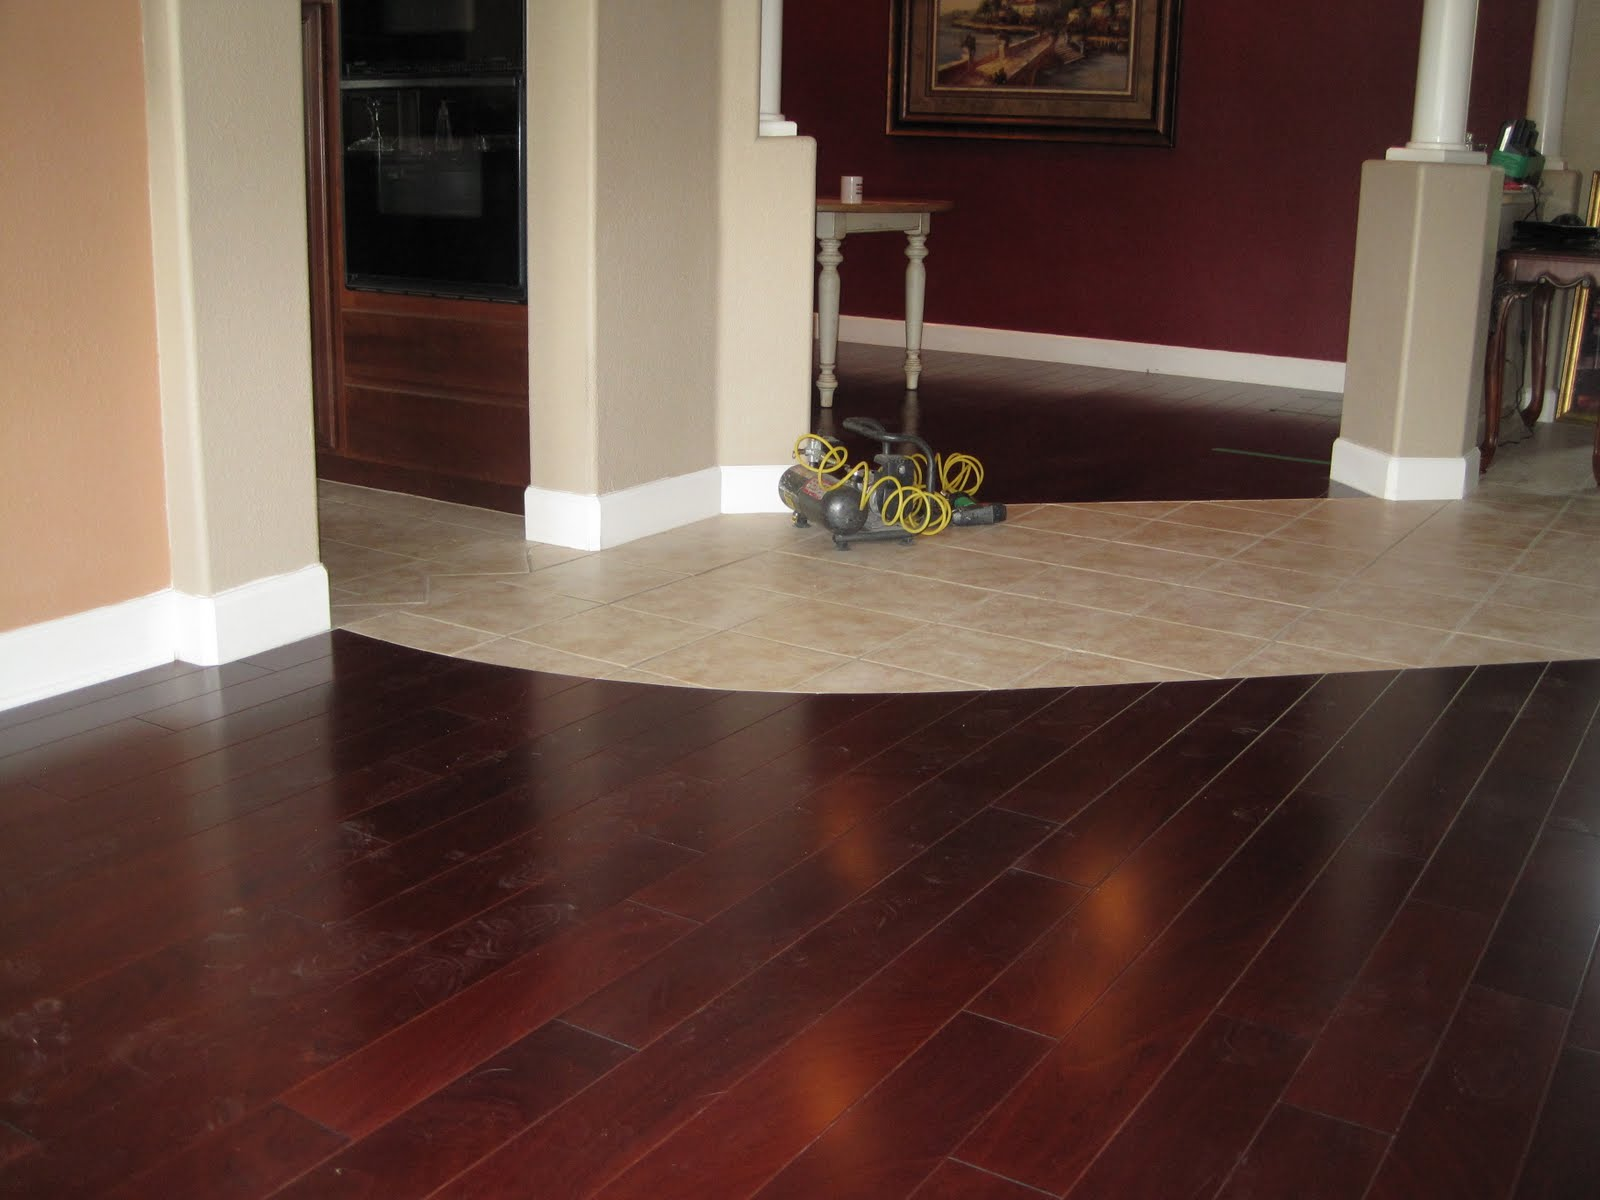 Sapele hardwood to replace carpet in the living room and dining room  title=